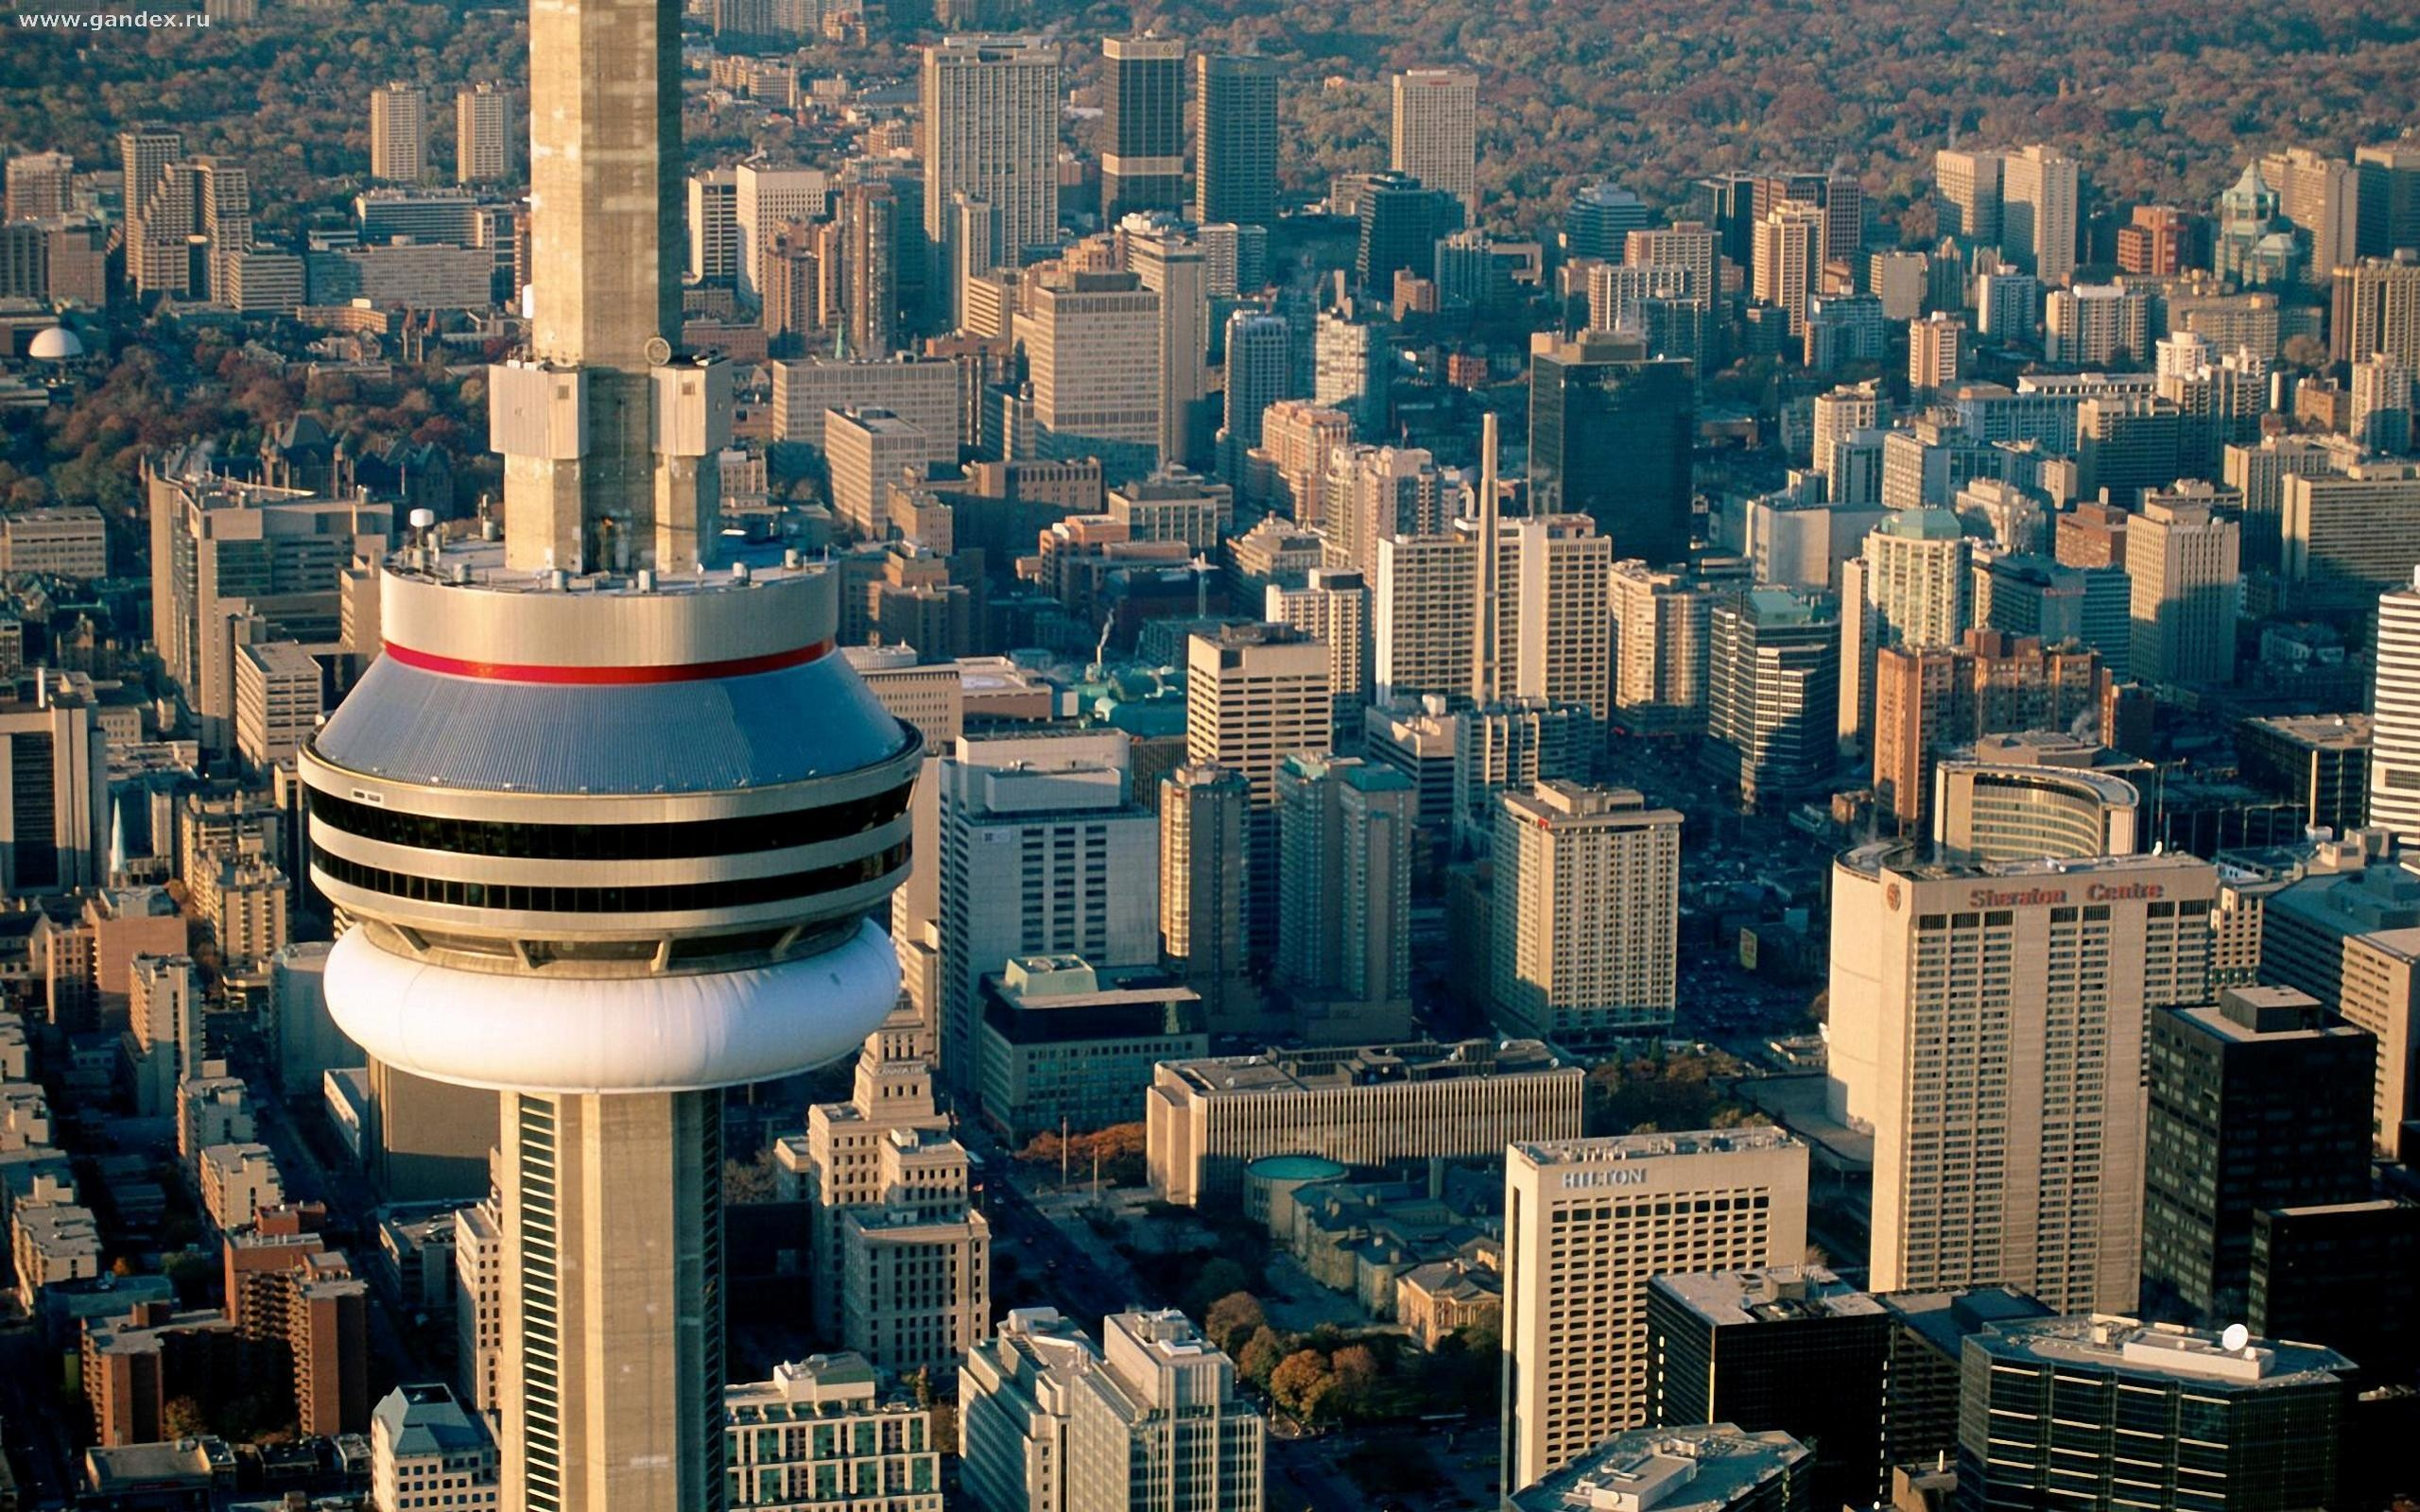 2560x1600 Cityscapes skylines toronto hdr photography wallpaper |  | 17463 |  WallpaperUP